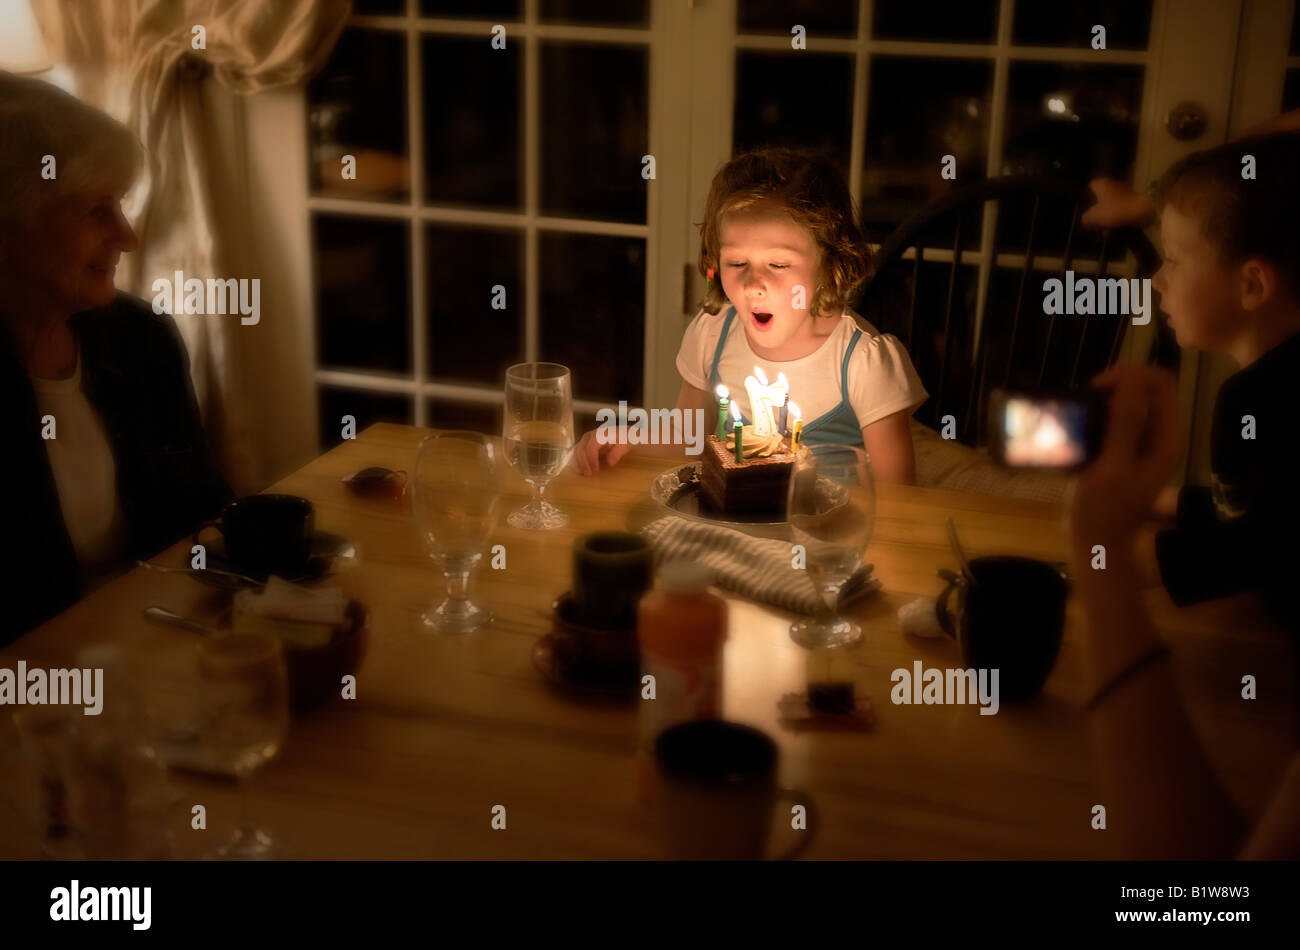 Seven year old girl blows out the candles on her birthday cake - Stock Image